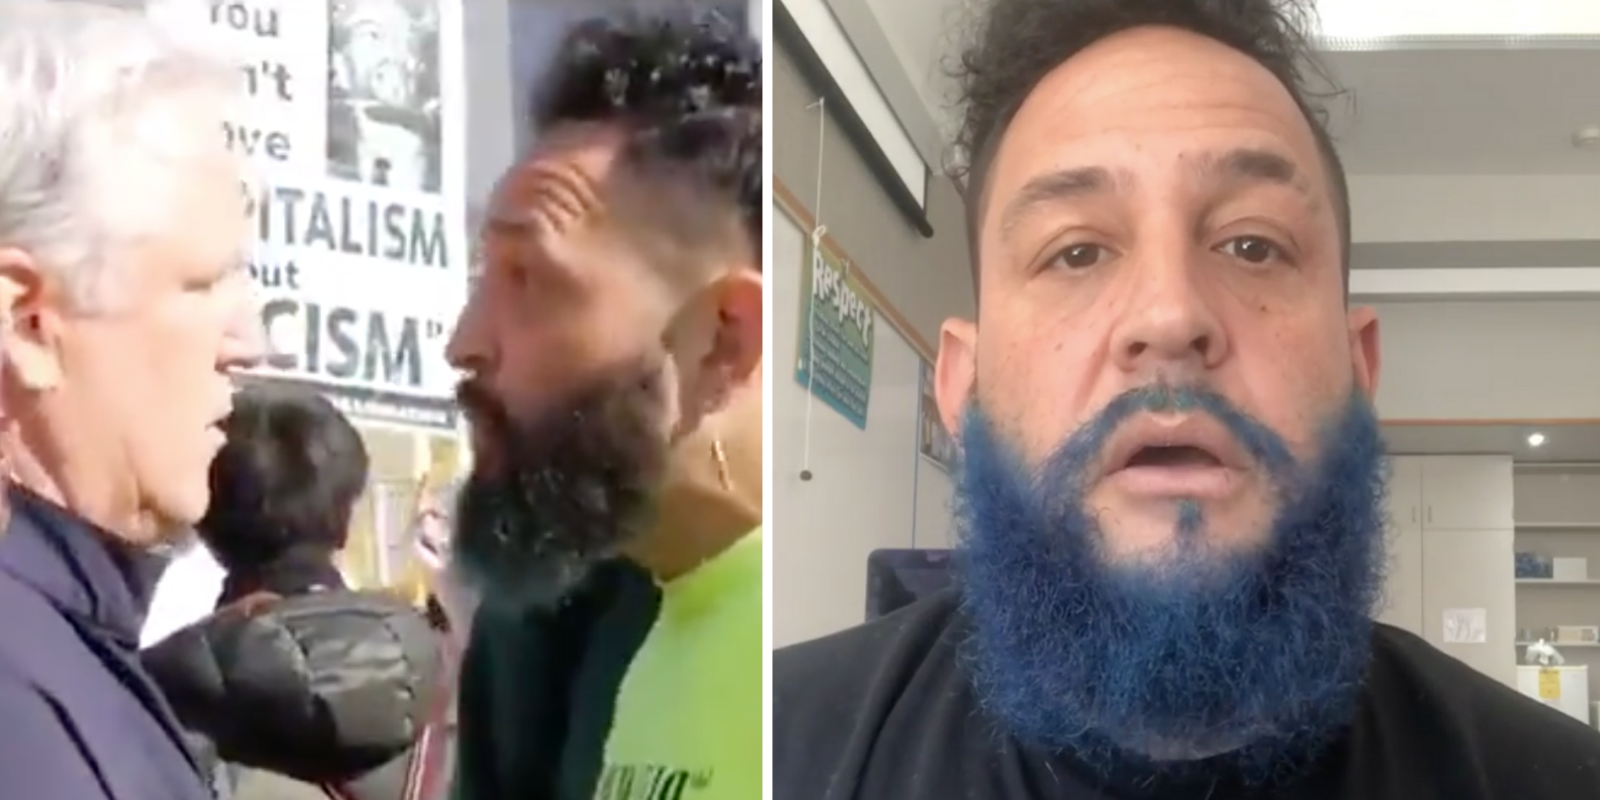 A protestor recorded threatening to harm the San Francisco GOP chairman in a viral video has been identified as a local hip-hop DJ and social worker.